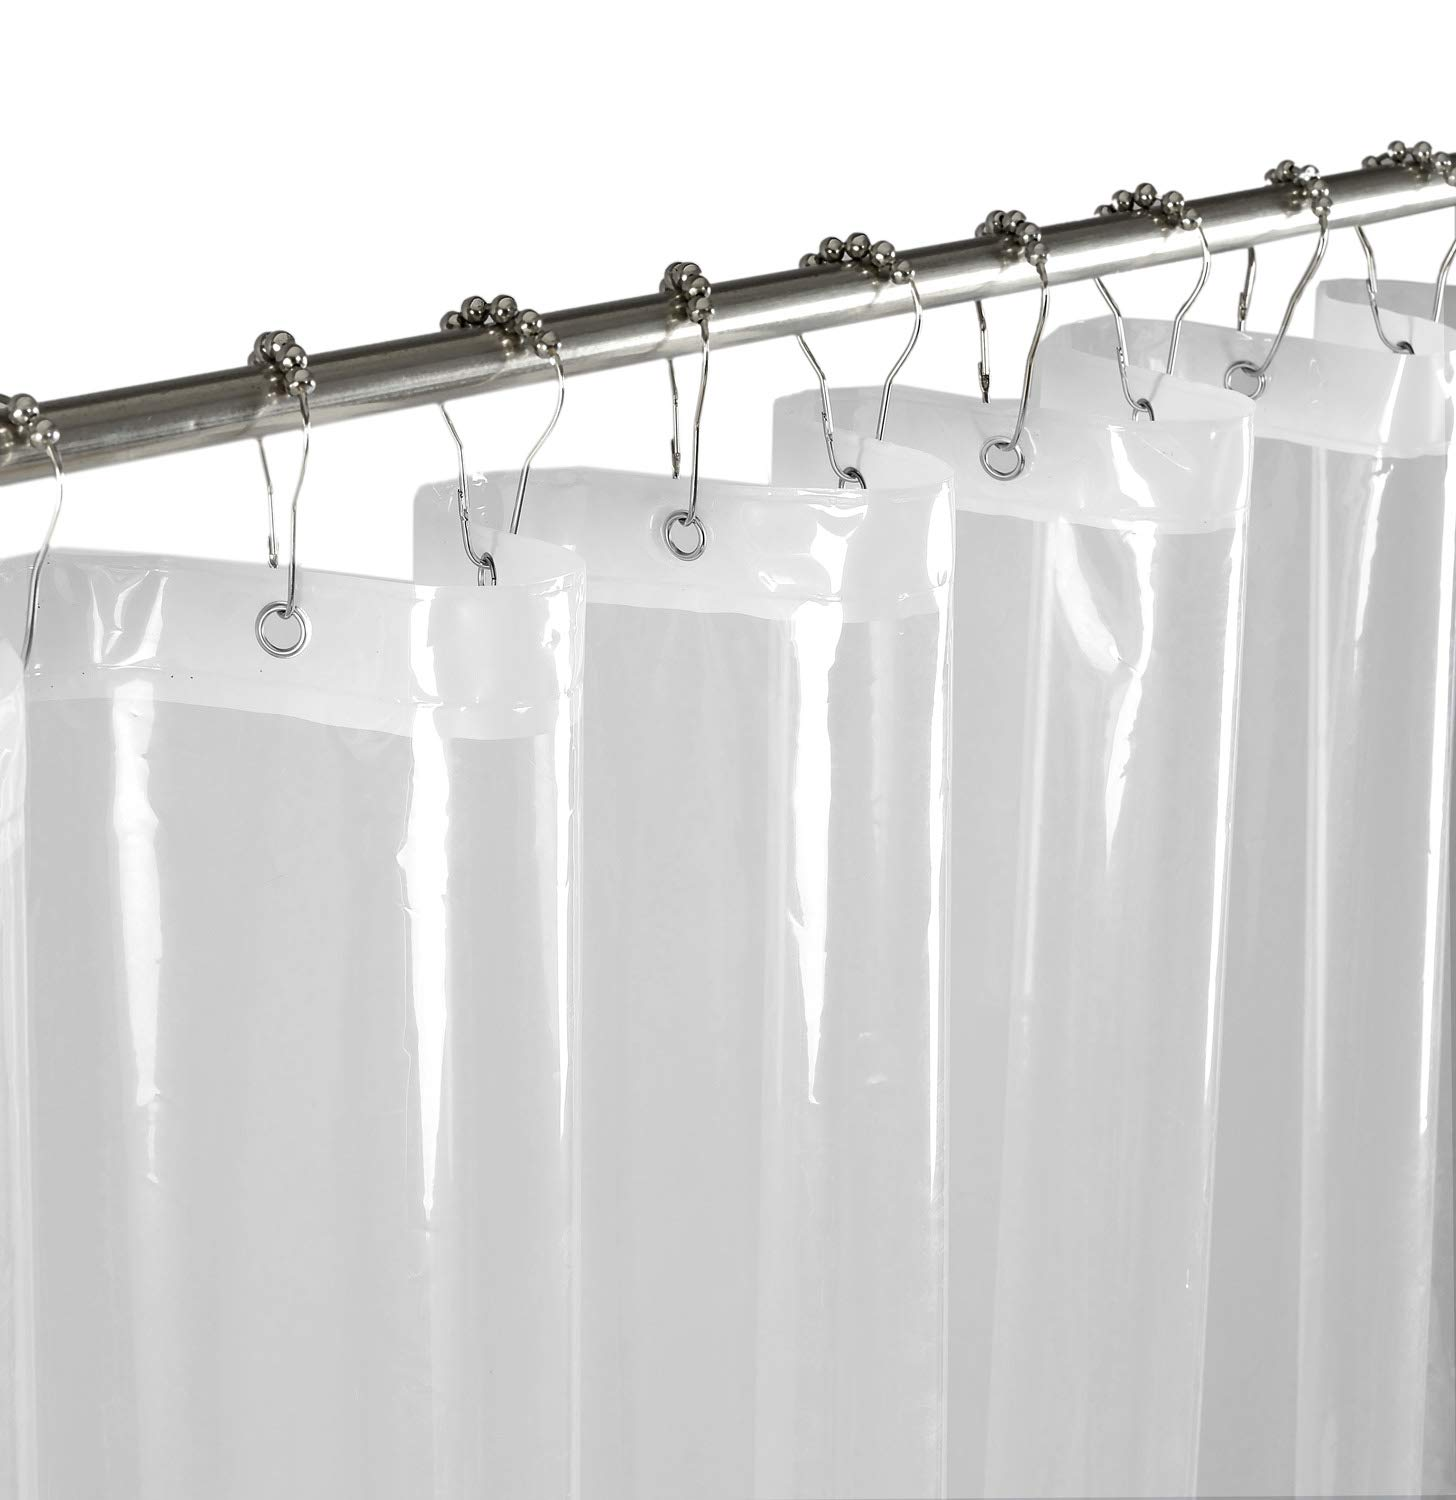 Mrs.Awesome PEVA Mold & Mildew Resistant Odorless Shower Curtain or Liner made from PVC-free -70X72 - Non Toxic, Eco-Friendly, PVC-free, Rust Proof Grommets, 3 magnets at bottom. (Clear)